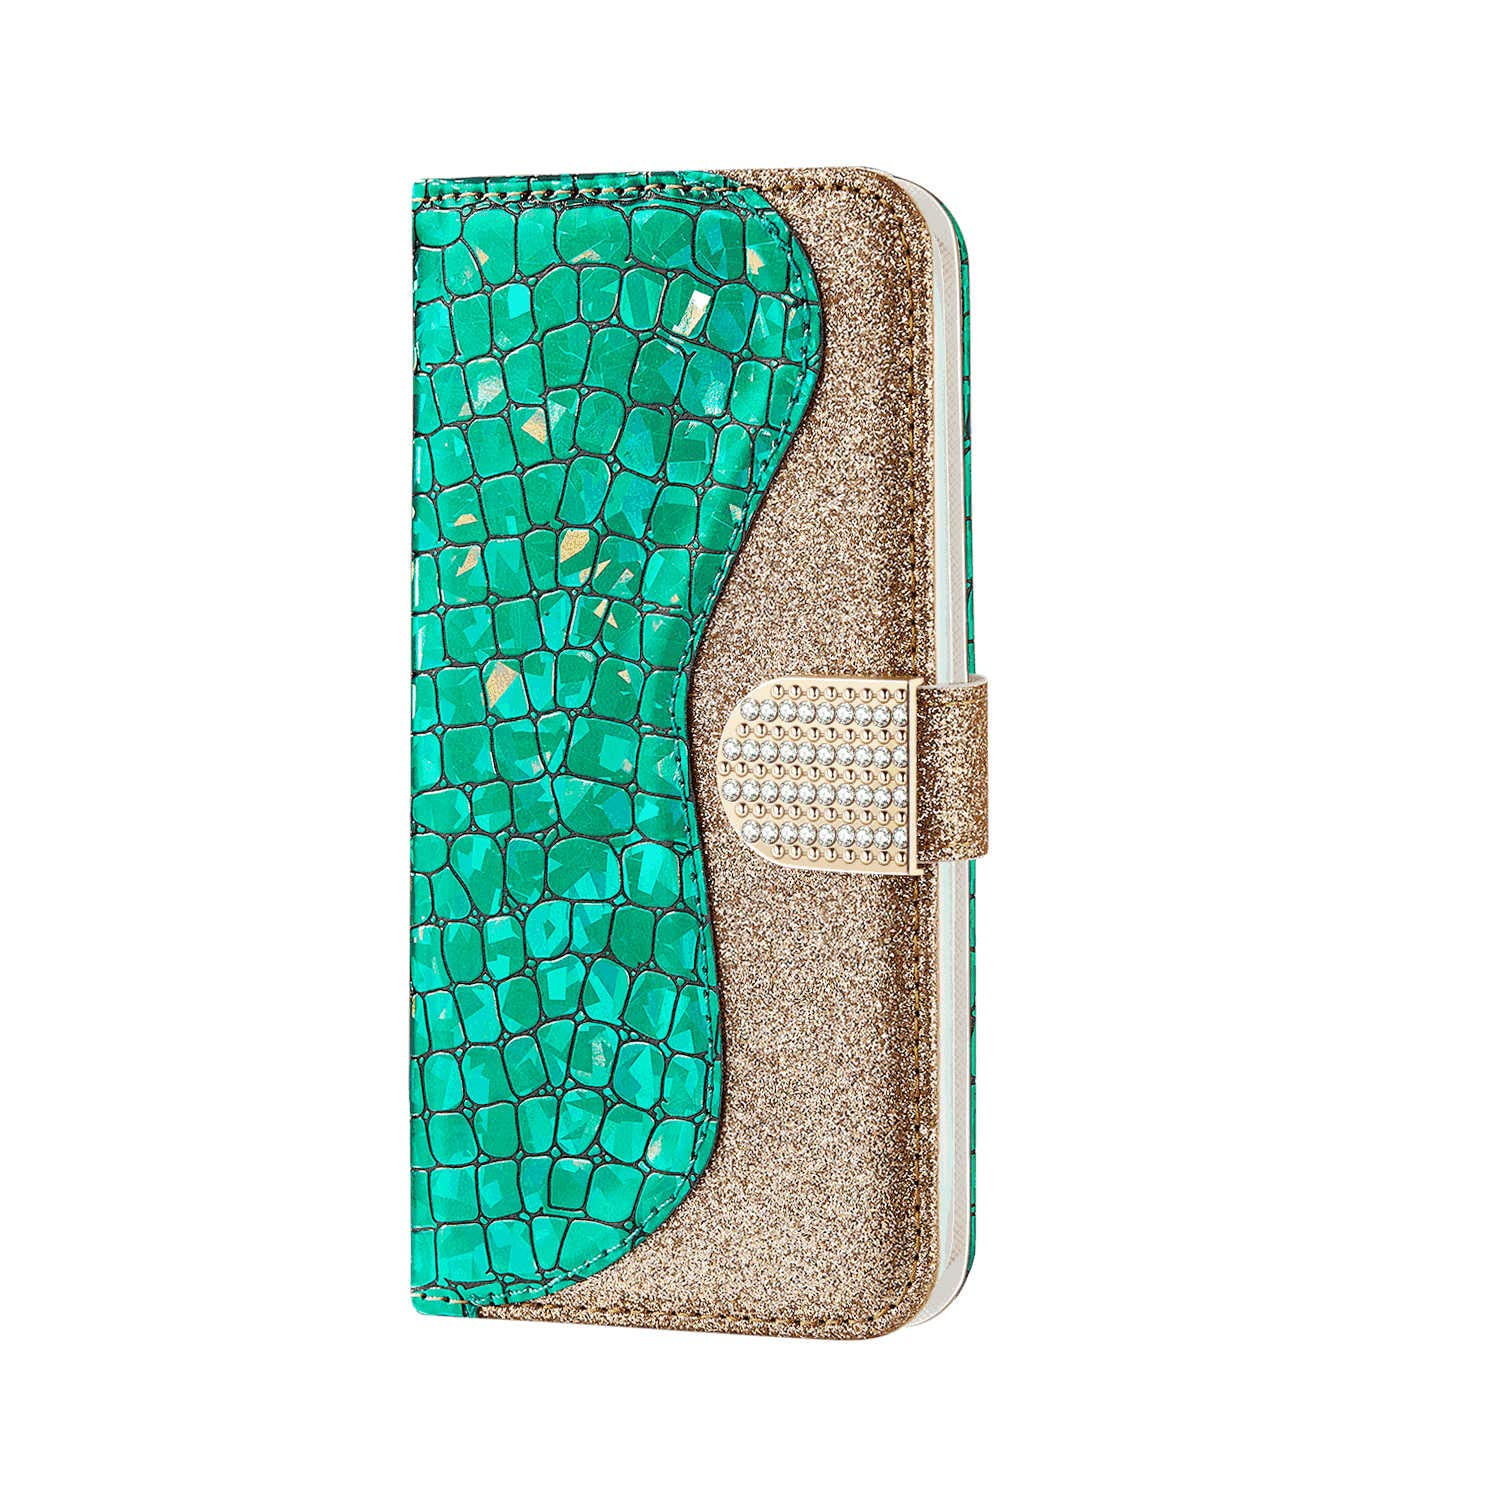 Elegant White Wallet Case for Samsung Galaxy S20 Plus PU Leather Flip Cover Compatible with Samsung Galaxy S20 Plus